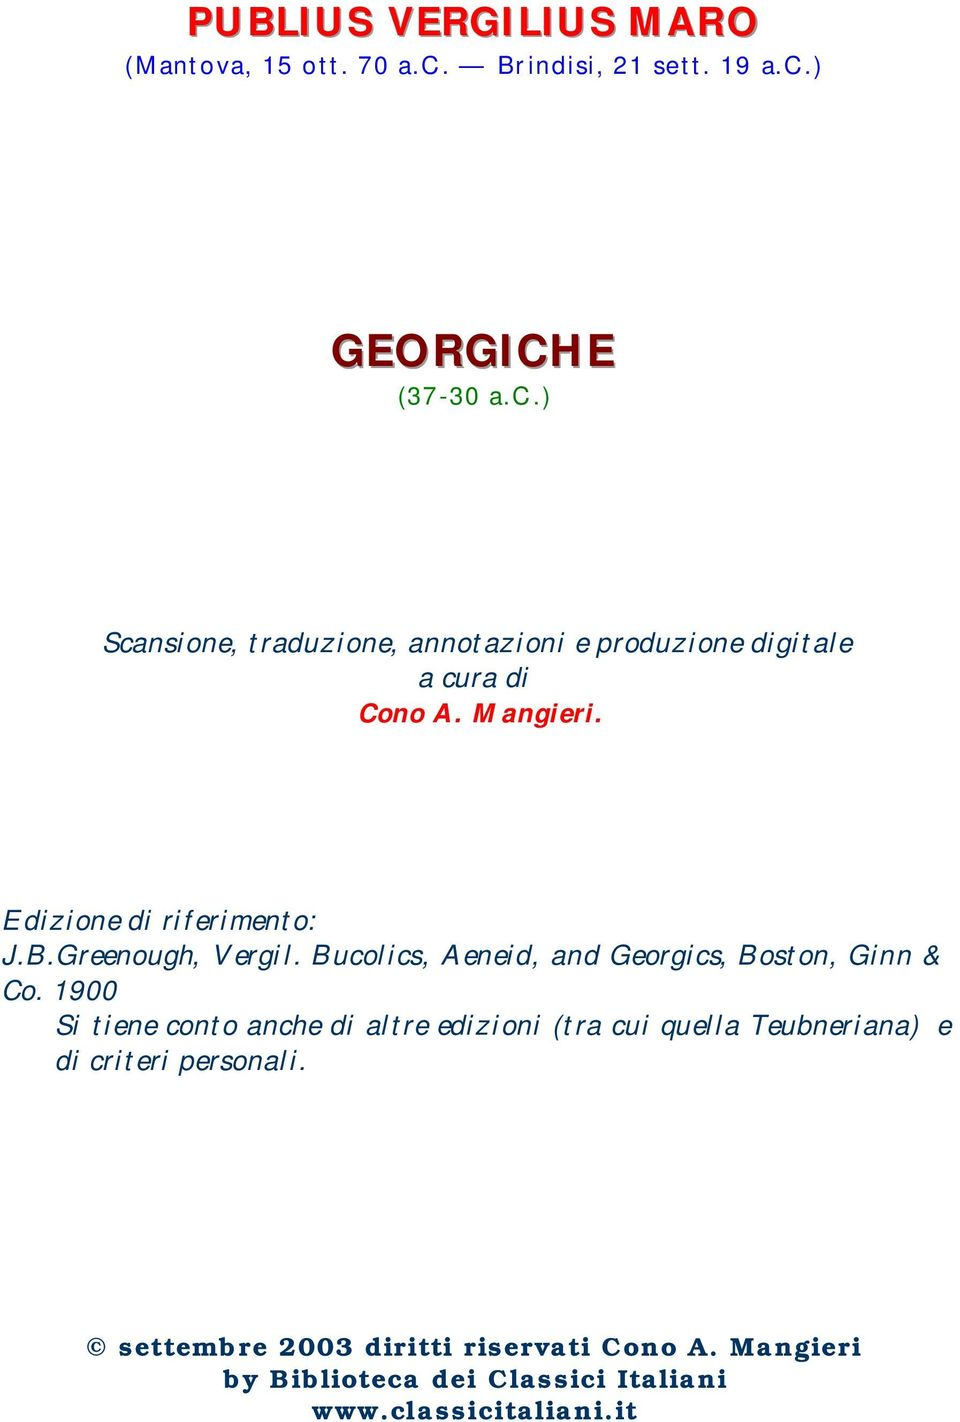 Mangieri. Edizione di riferimento: J.B.Greenough, Vergil. Bucolics, Aeneid, and Georgics, Boston, Ginn & Co.